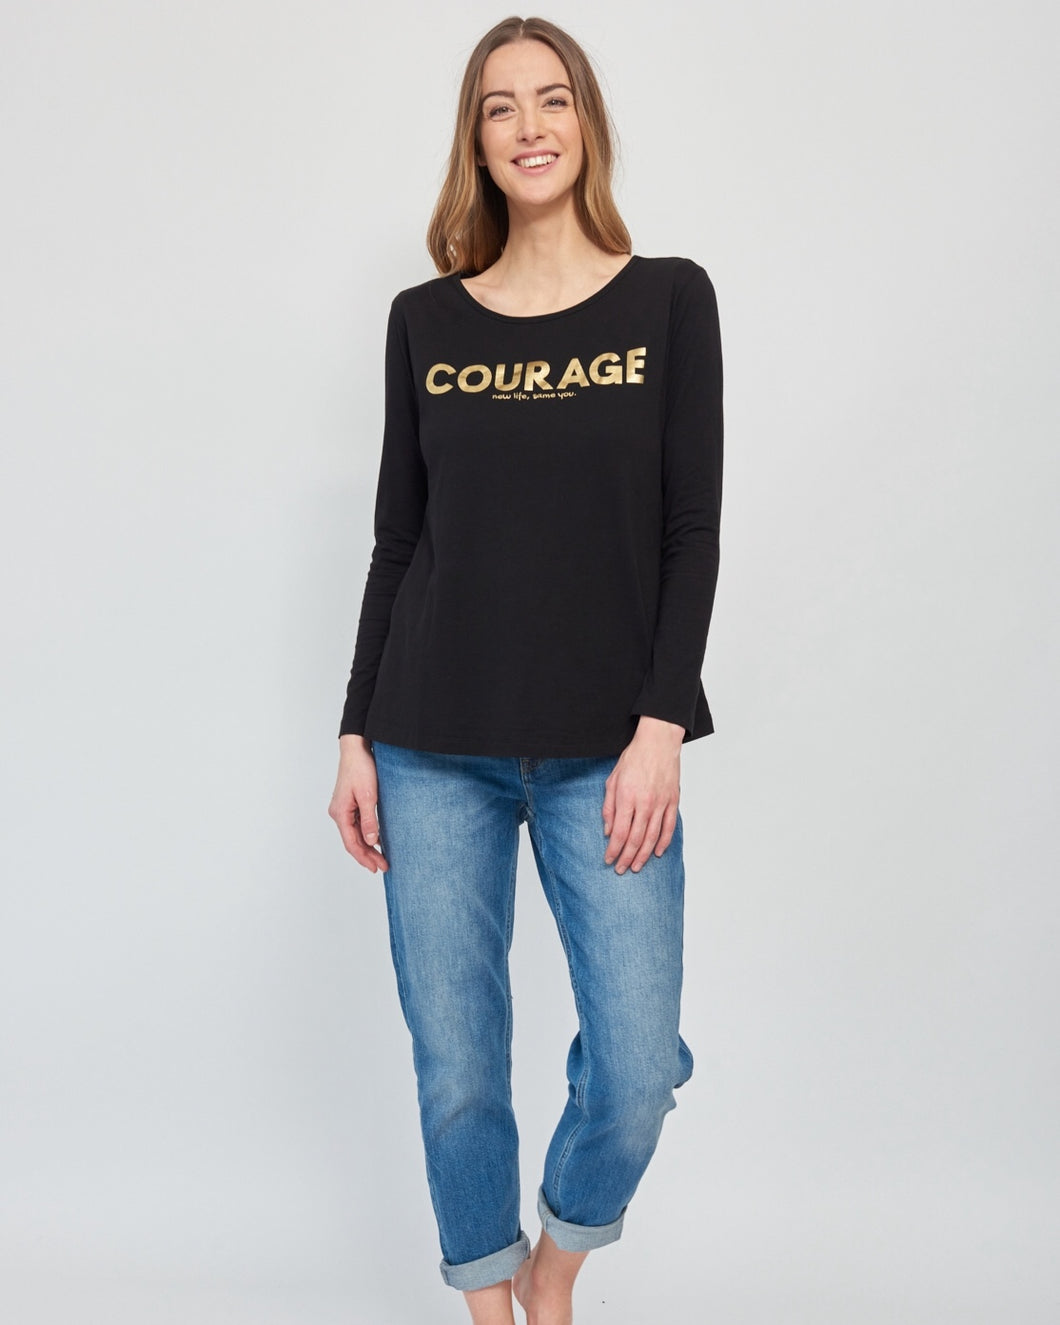 Courage Maternity & Nursing Longsleeve